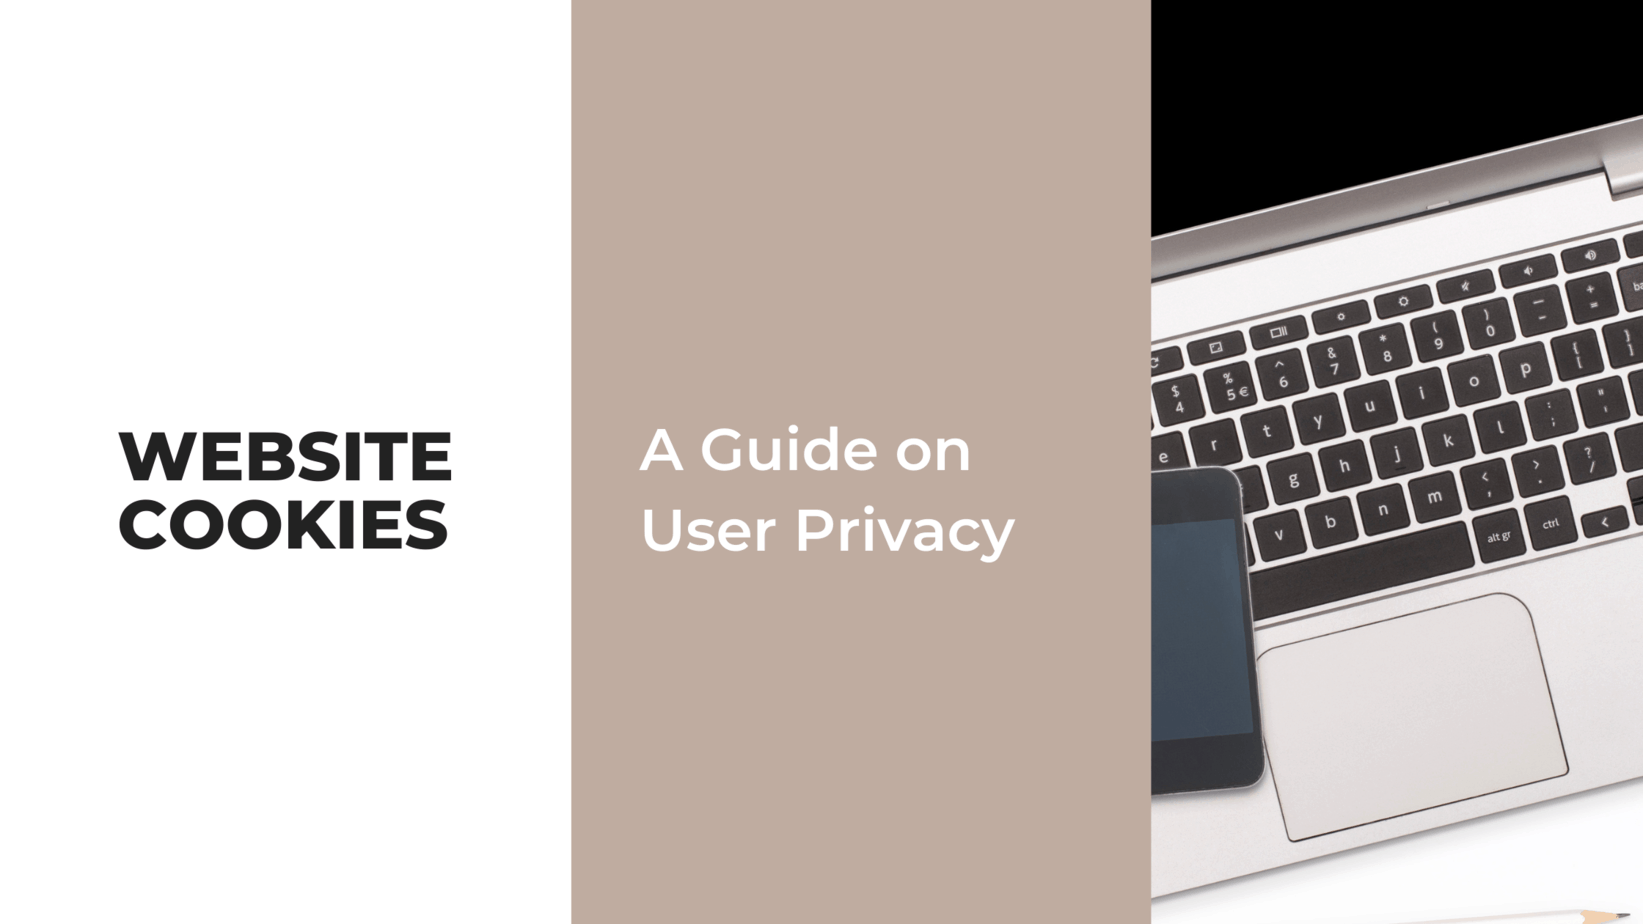 Website Cookies – A Guide on User Privacy